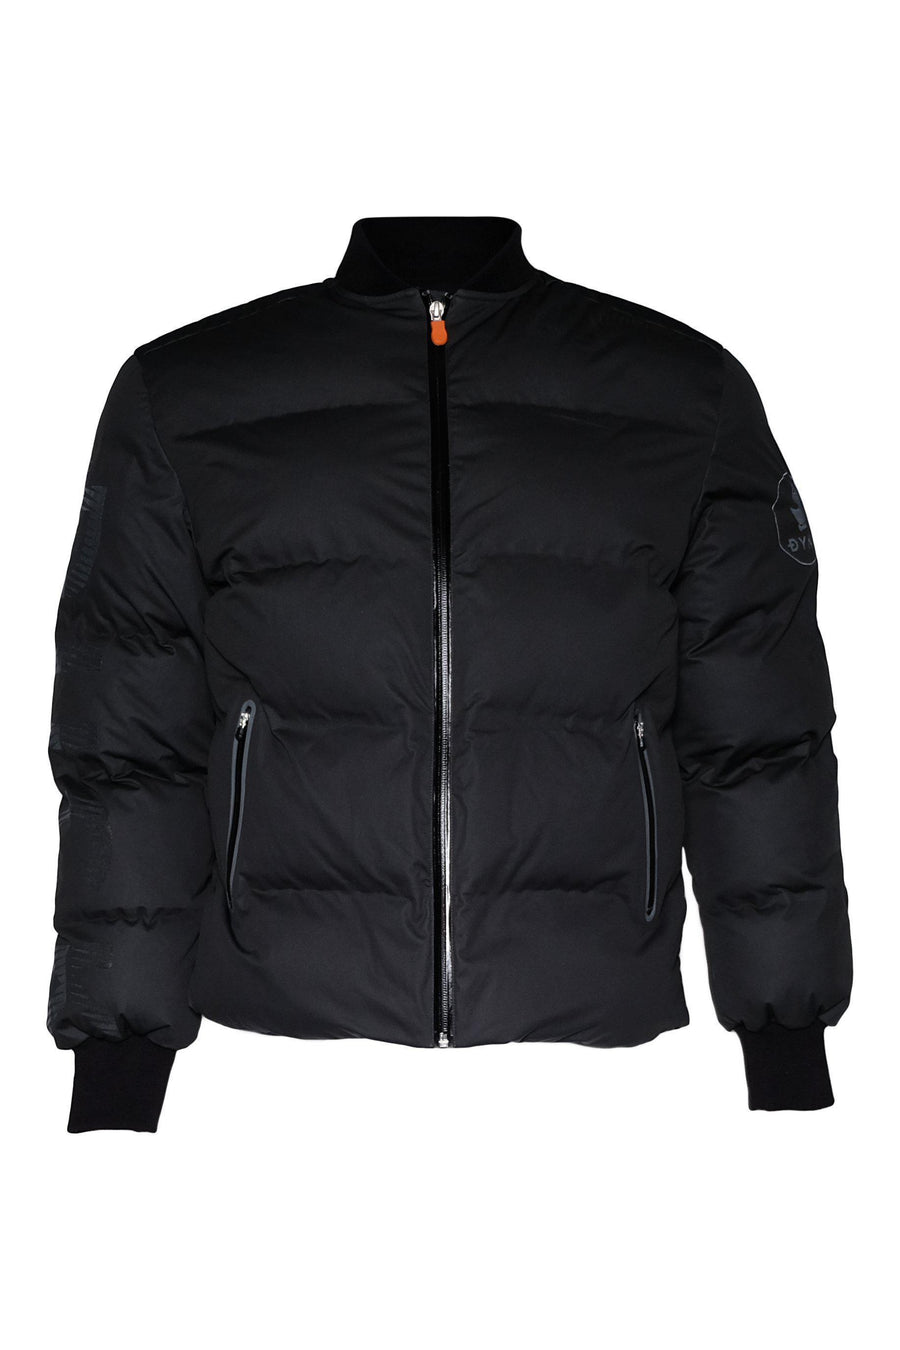 Jackets Dyne for Save The Duck Puffer Jacket Dyne Conspiracy New York